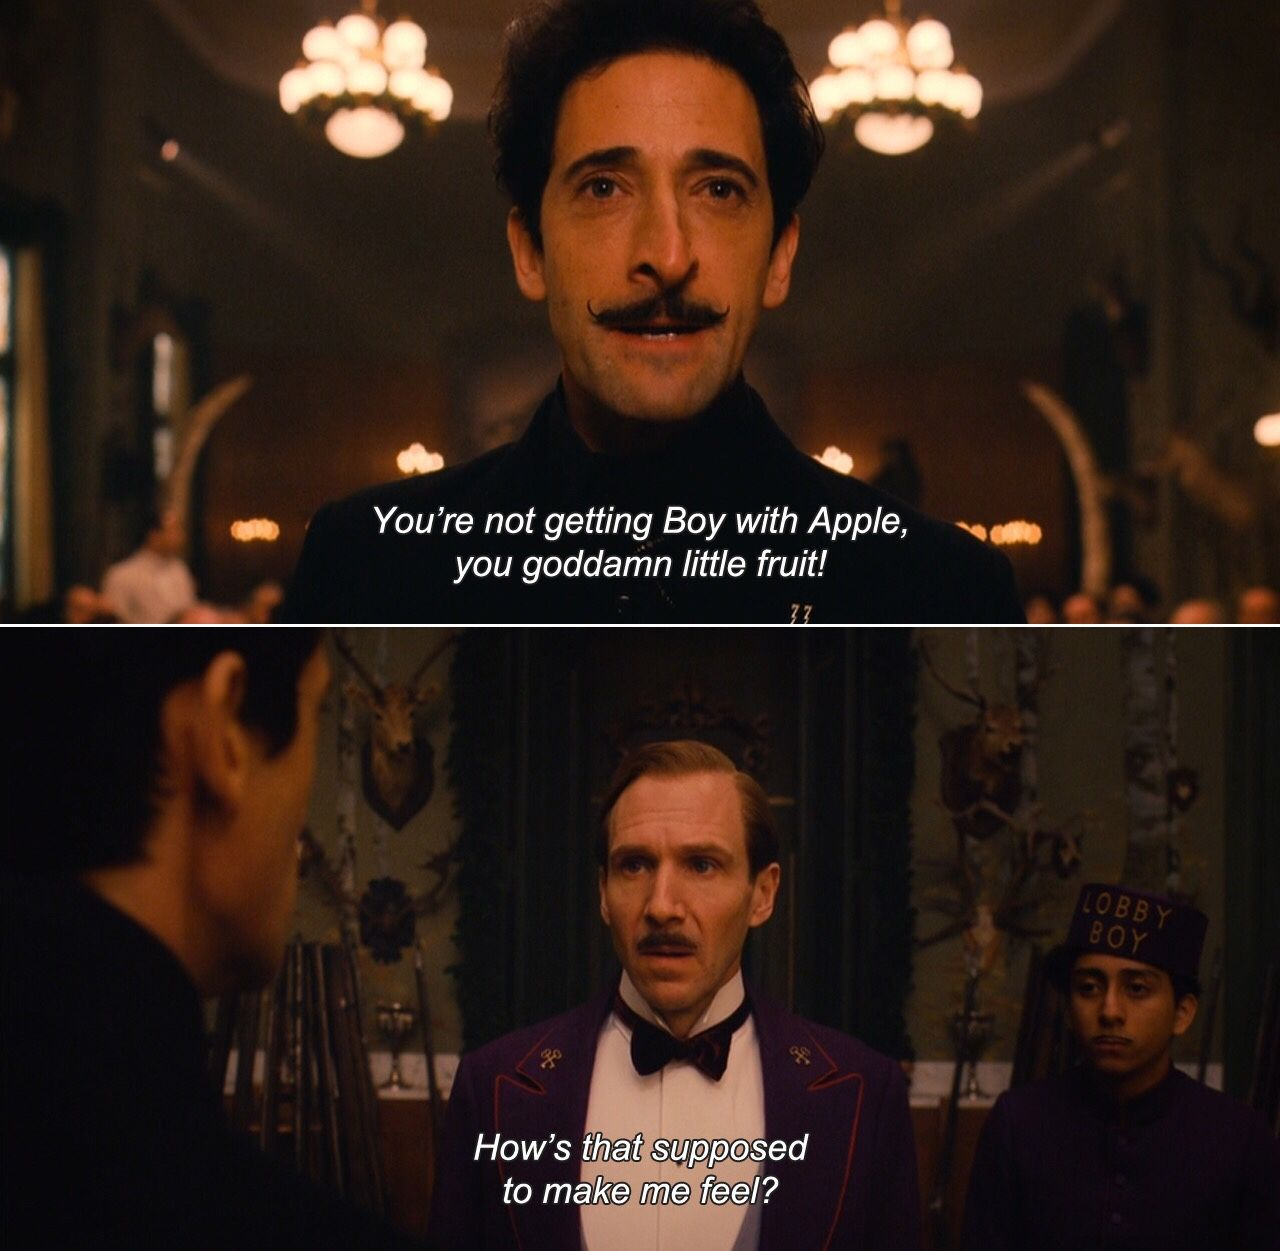 Grand Budapest Hotel Quotes Impressive The Grand Budapest Hotel  Movie Quotes  Pinterest  Grand Budapest